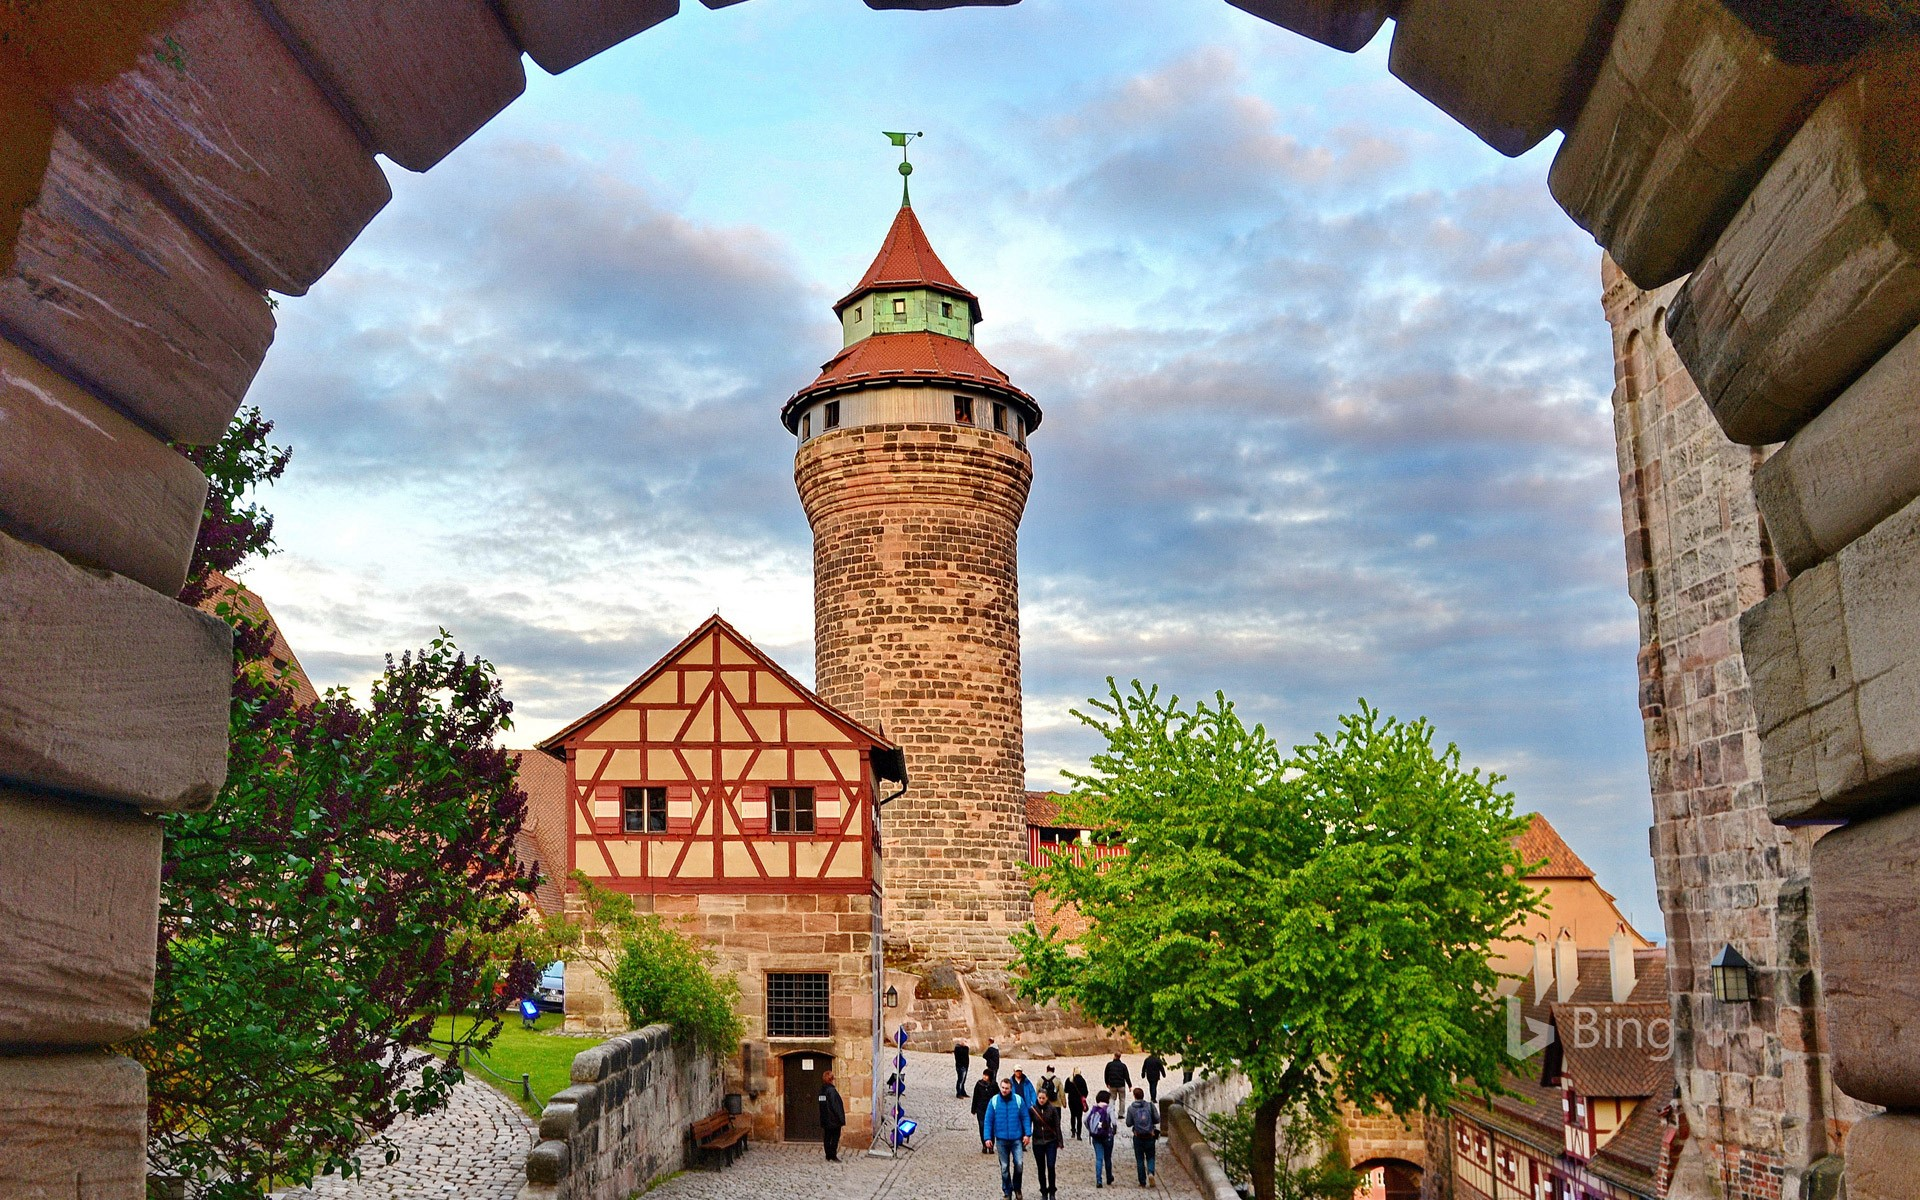 Sinwell Tower of the Imperial Castle, Nuremberg, Bavaria